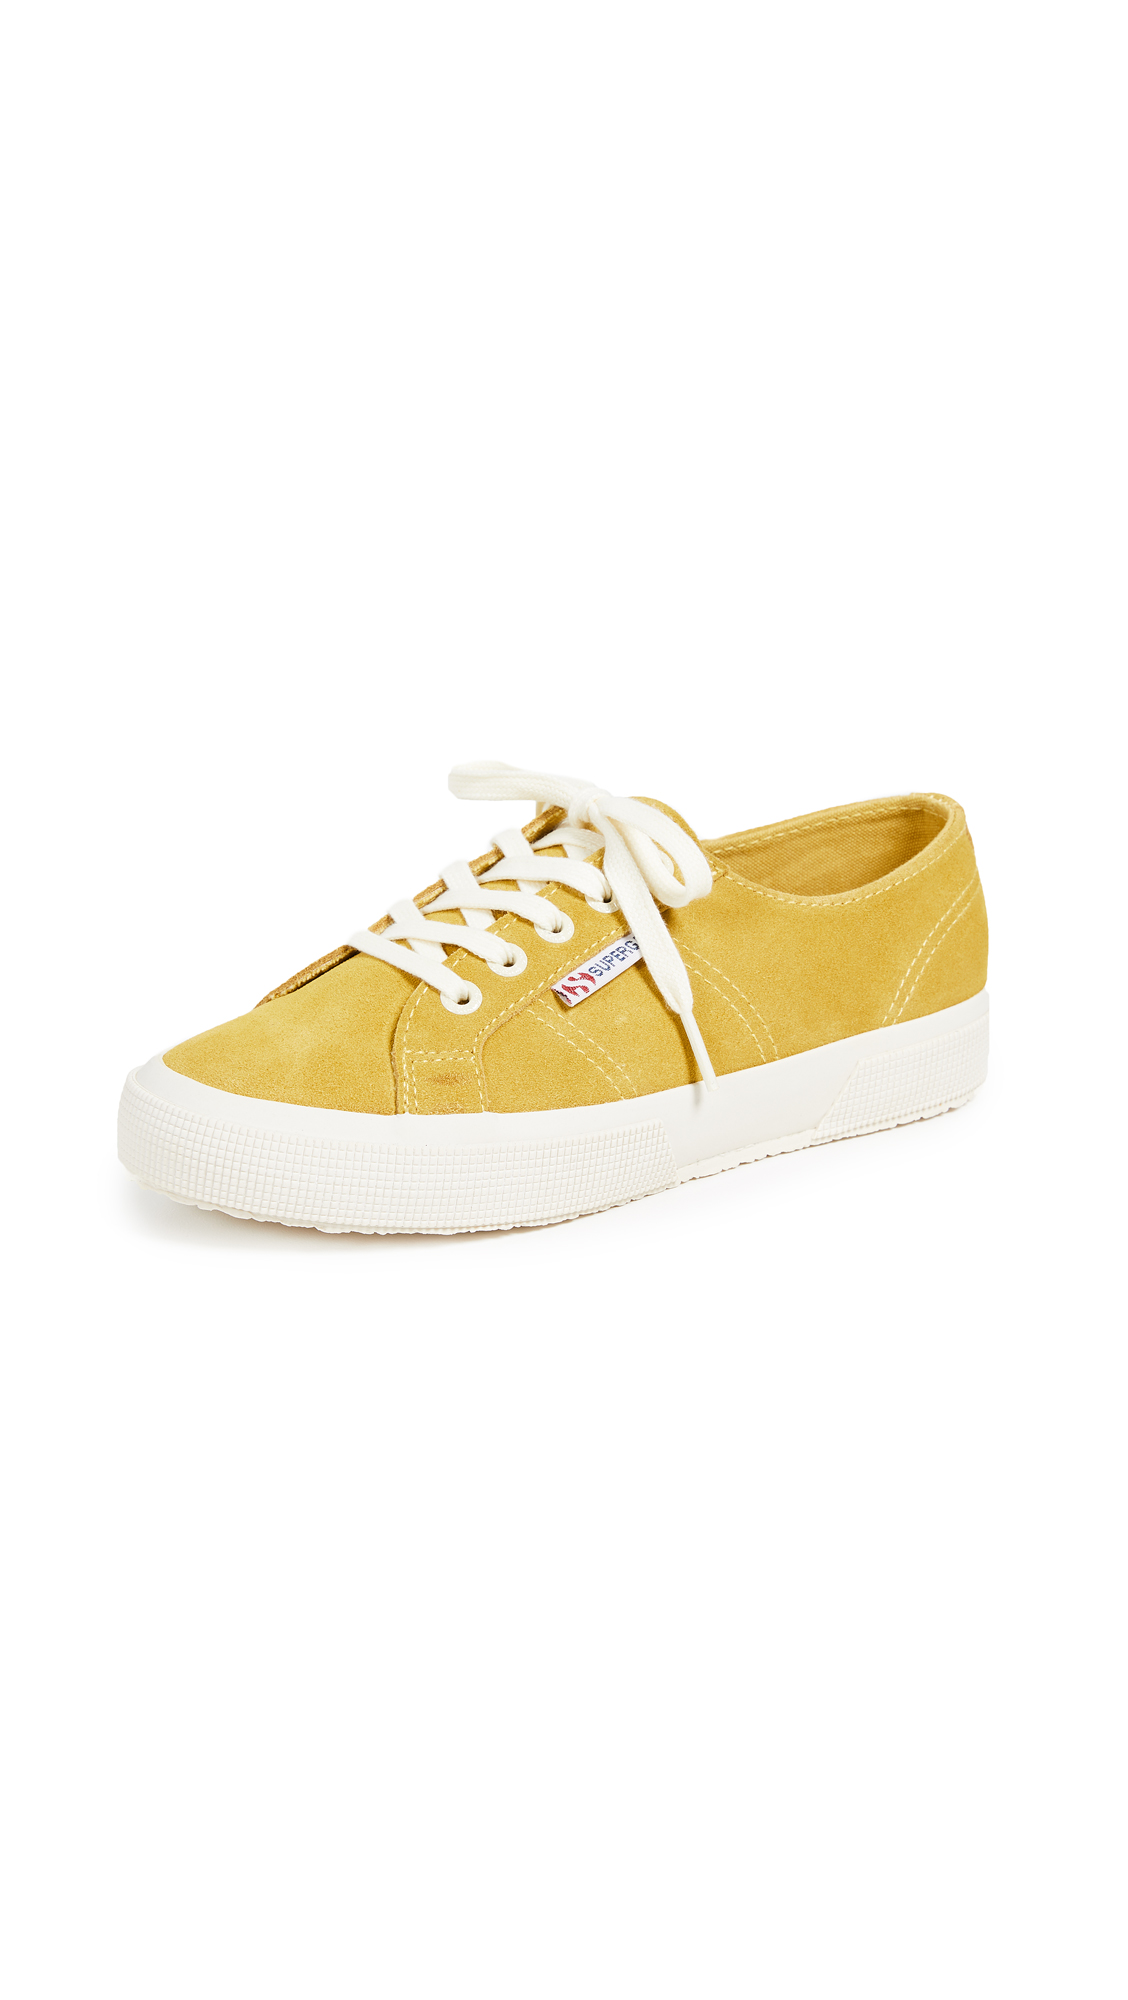 Superga 2750 Classic Lace Up Sneakers - Mustard